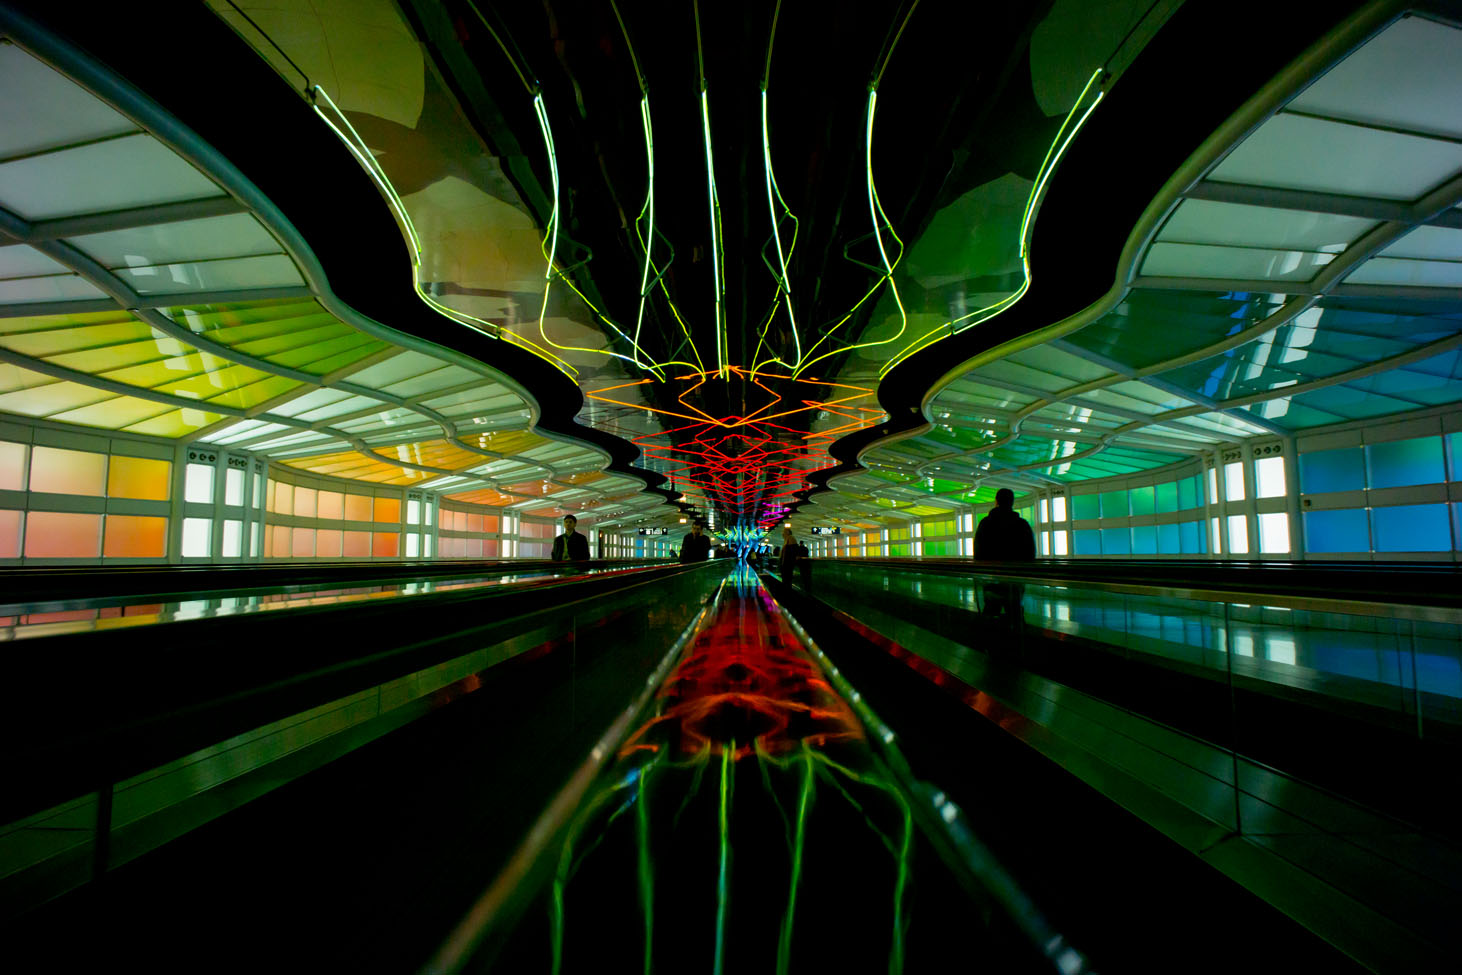 D1XTE1 Connecting walkway at O'Hare International Airport, Chicago, Illinois, USA. Image shot 2012. Exact date unknown.